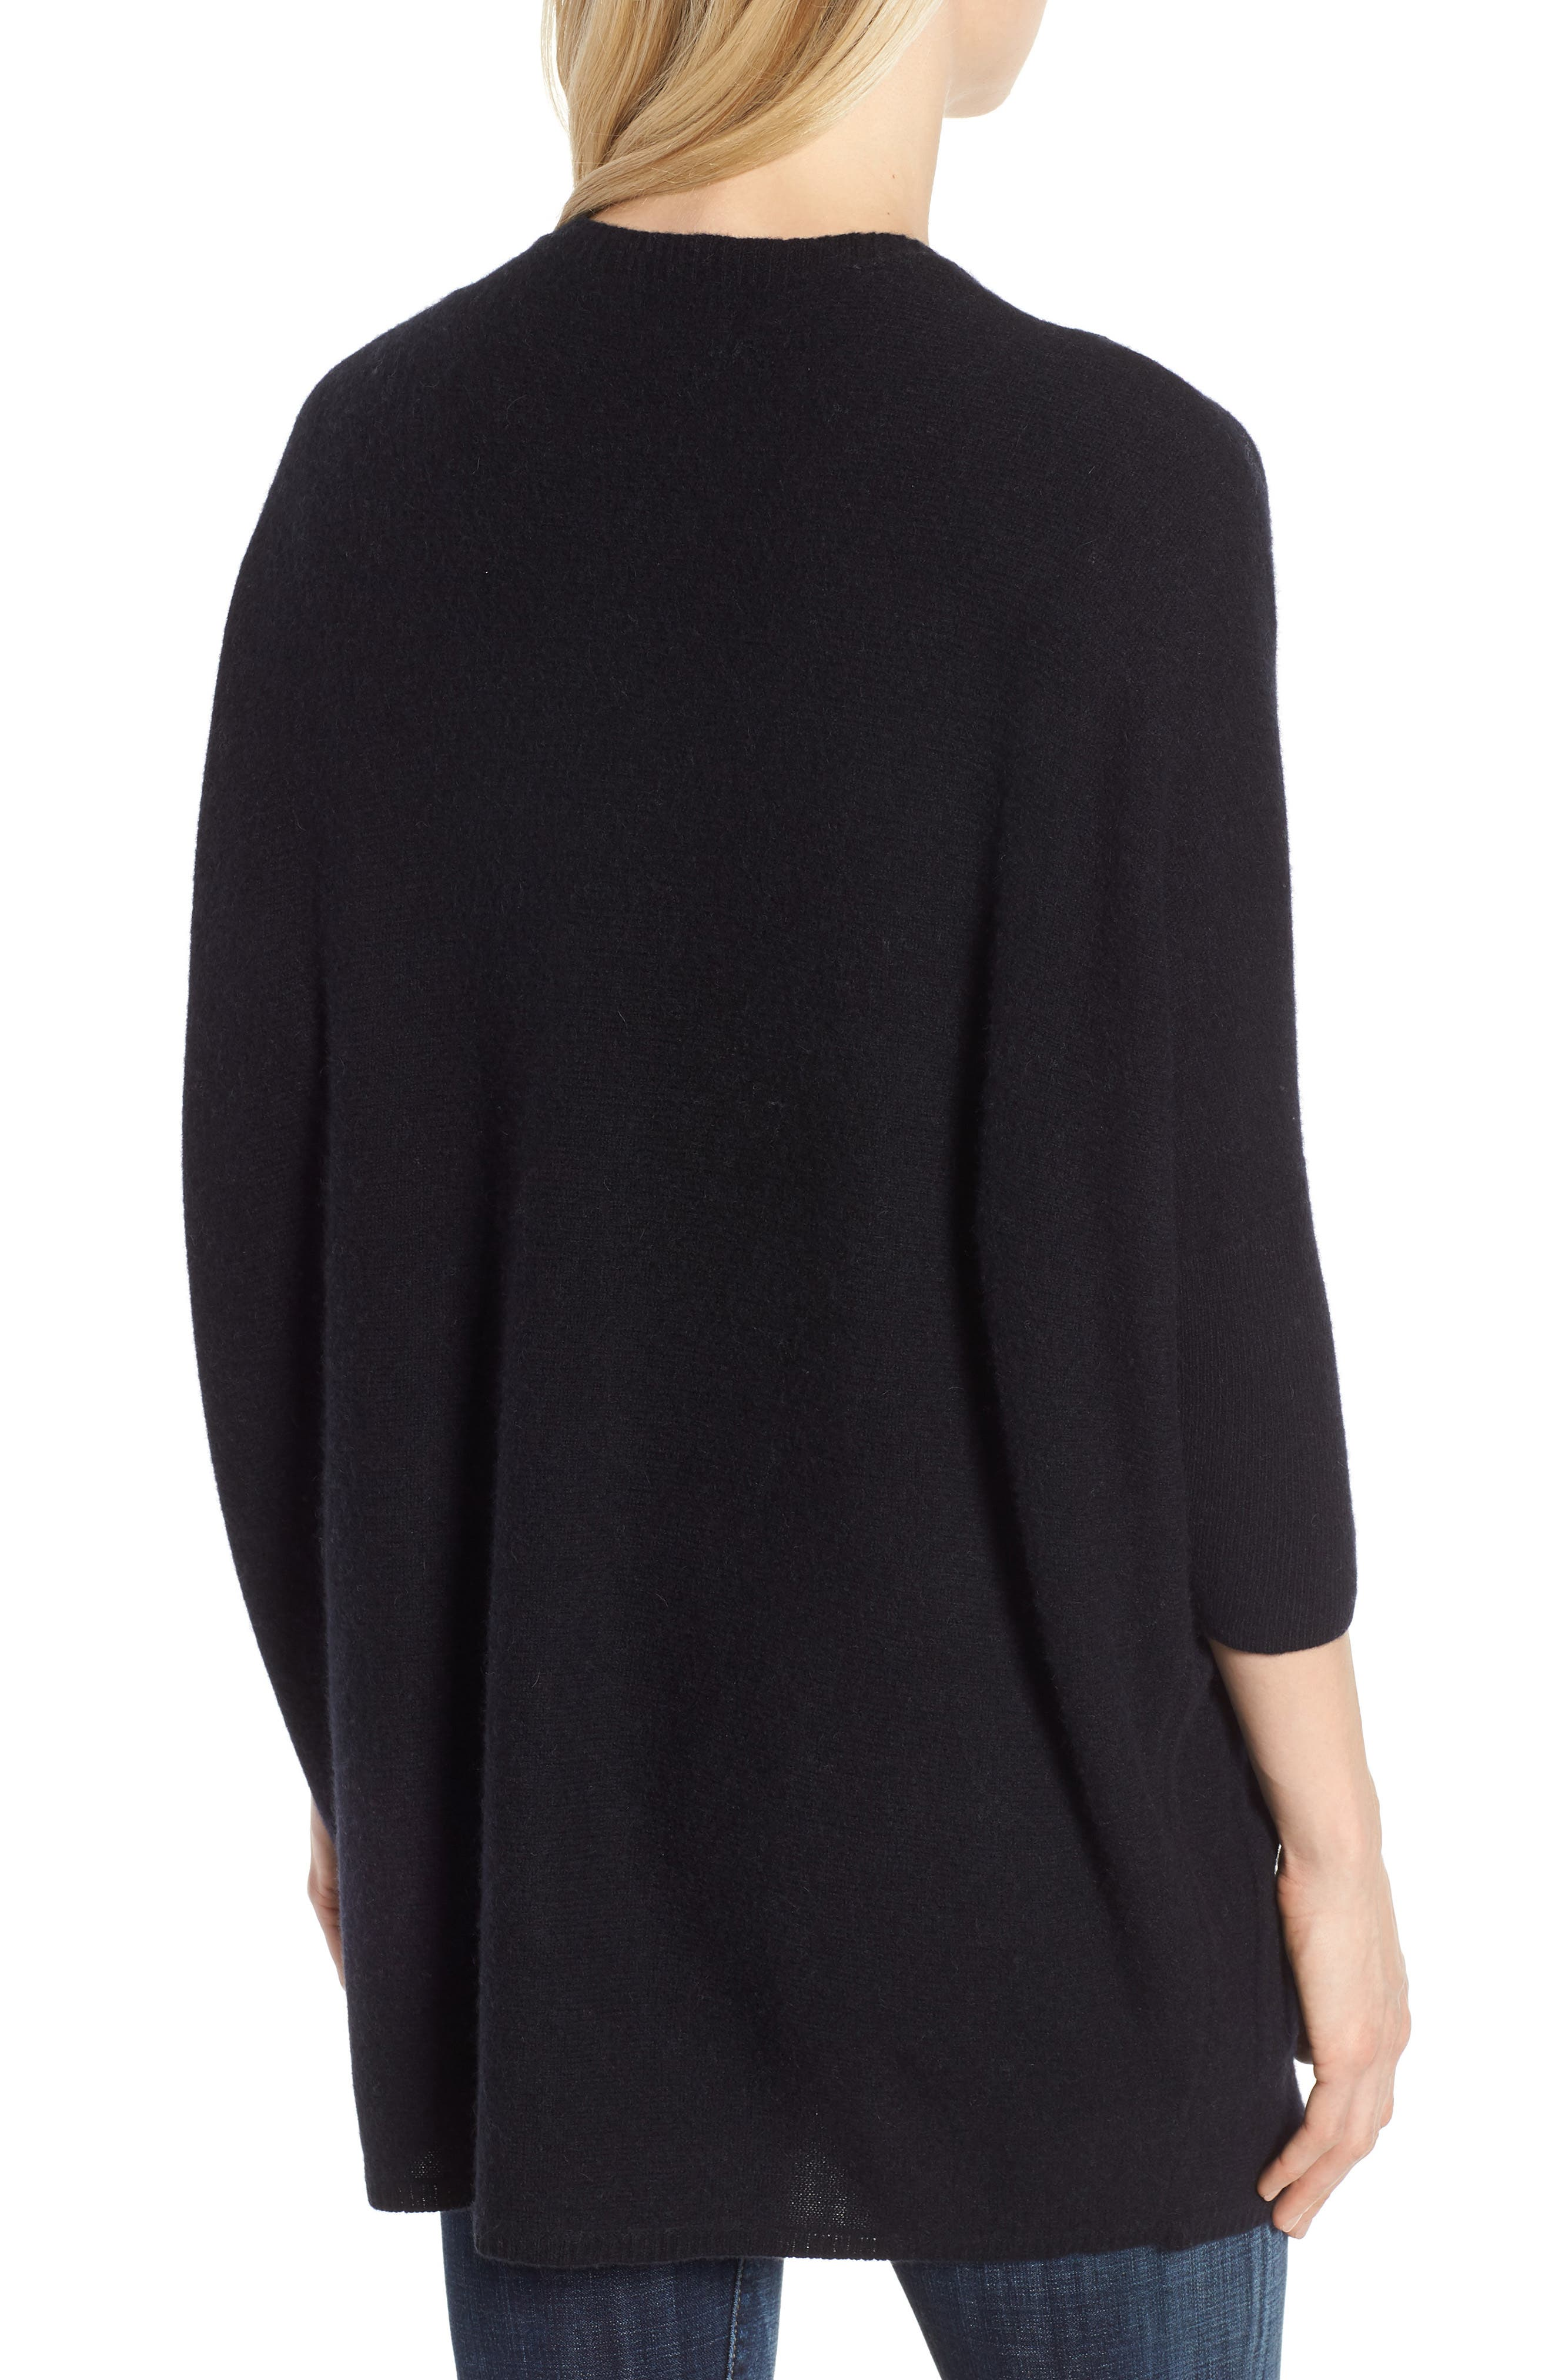 Cashmere Cardigan,                             Alternate thumbnail 2, color,                             BLACK